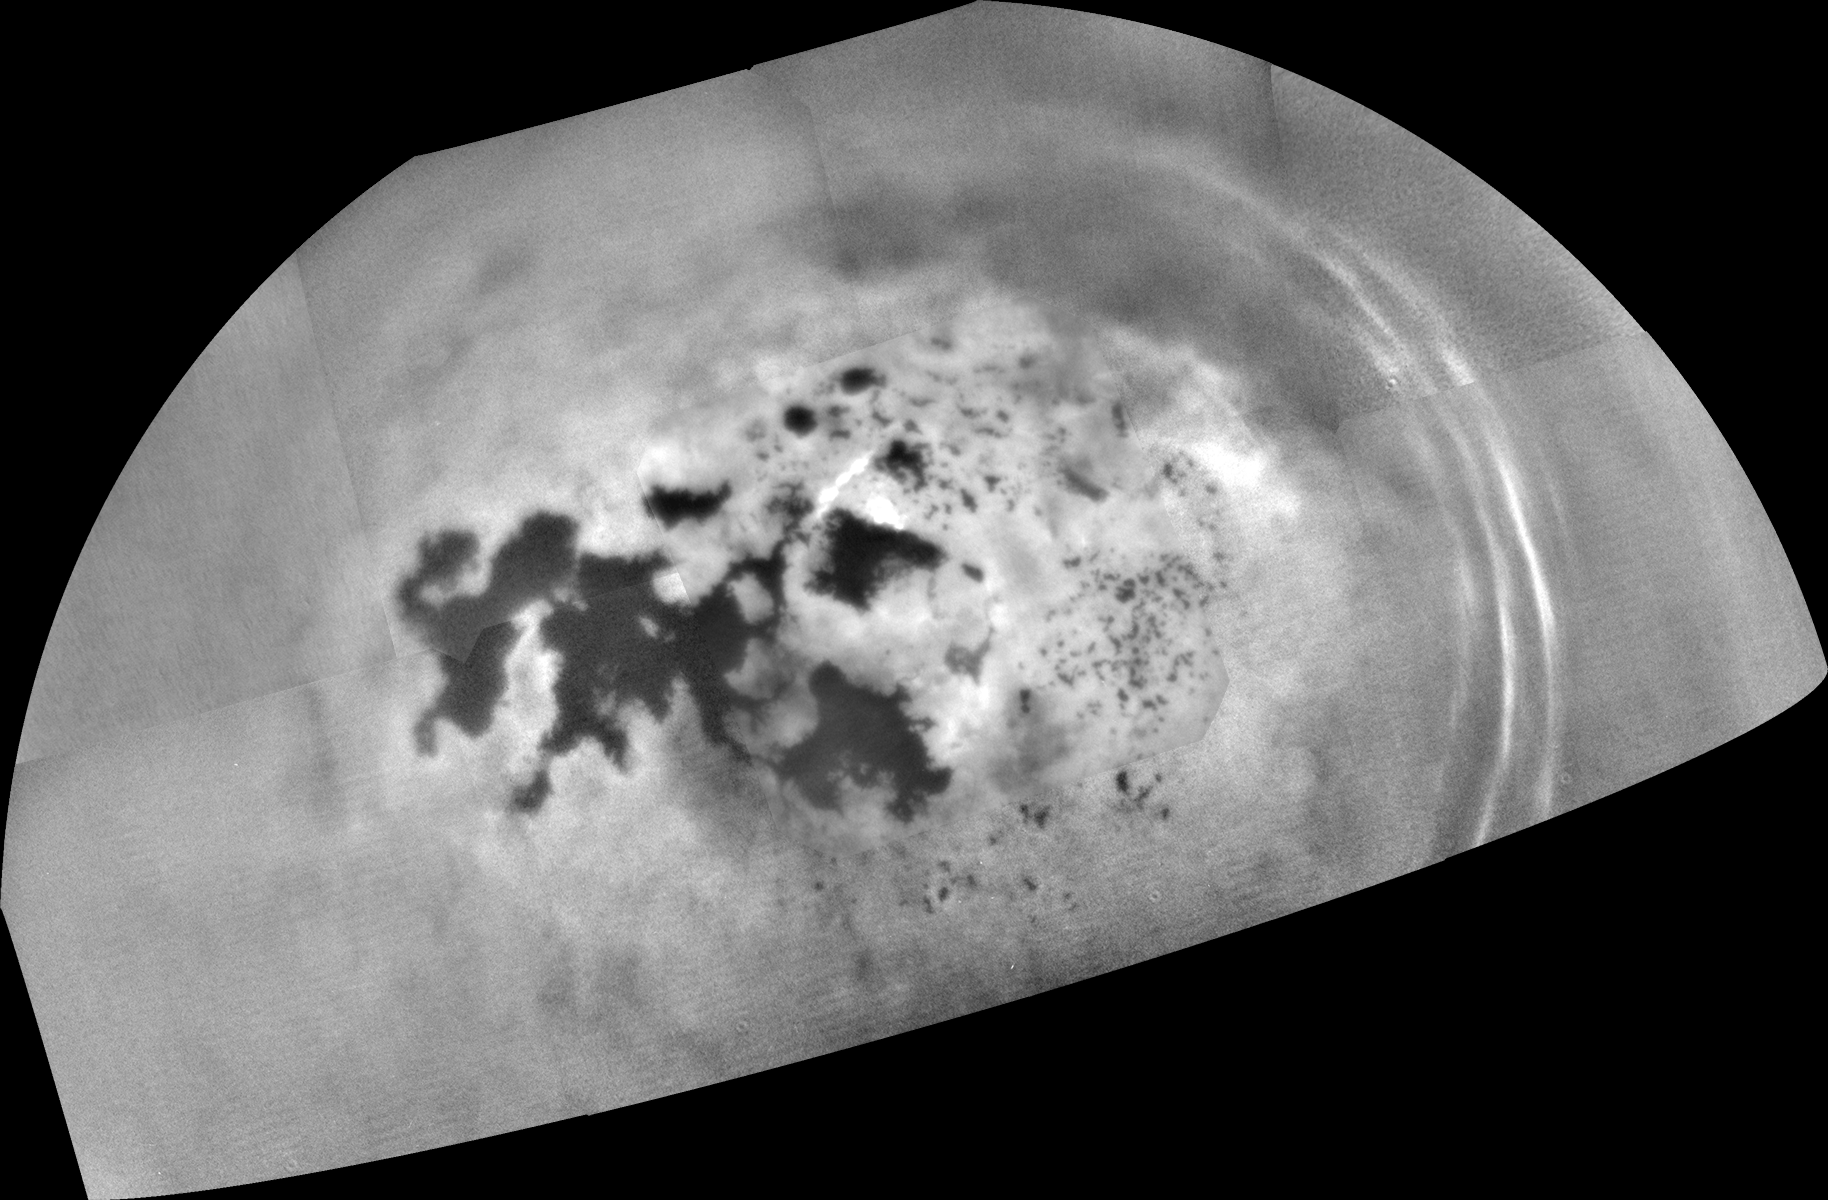 Black and white image of lakes on Titan.